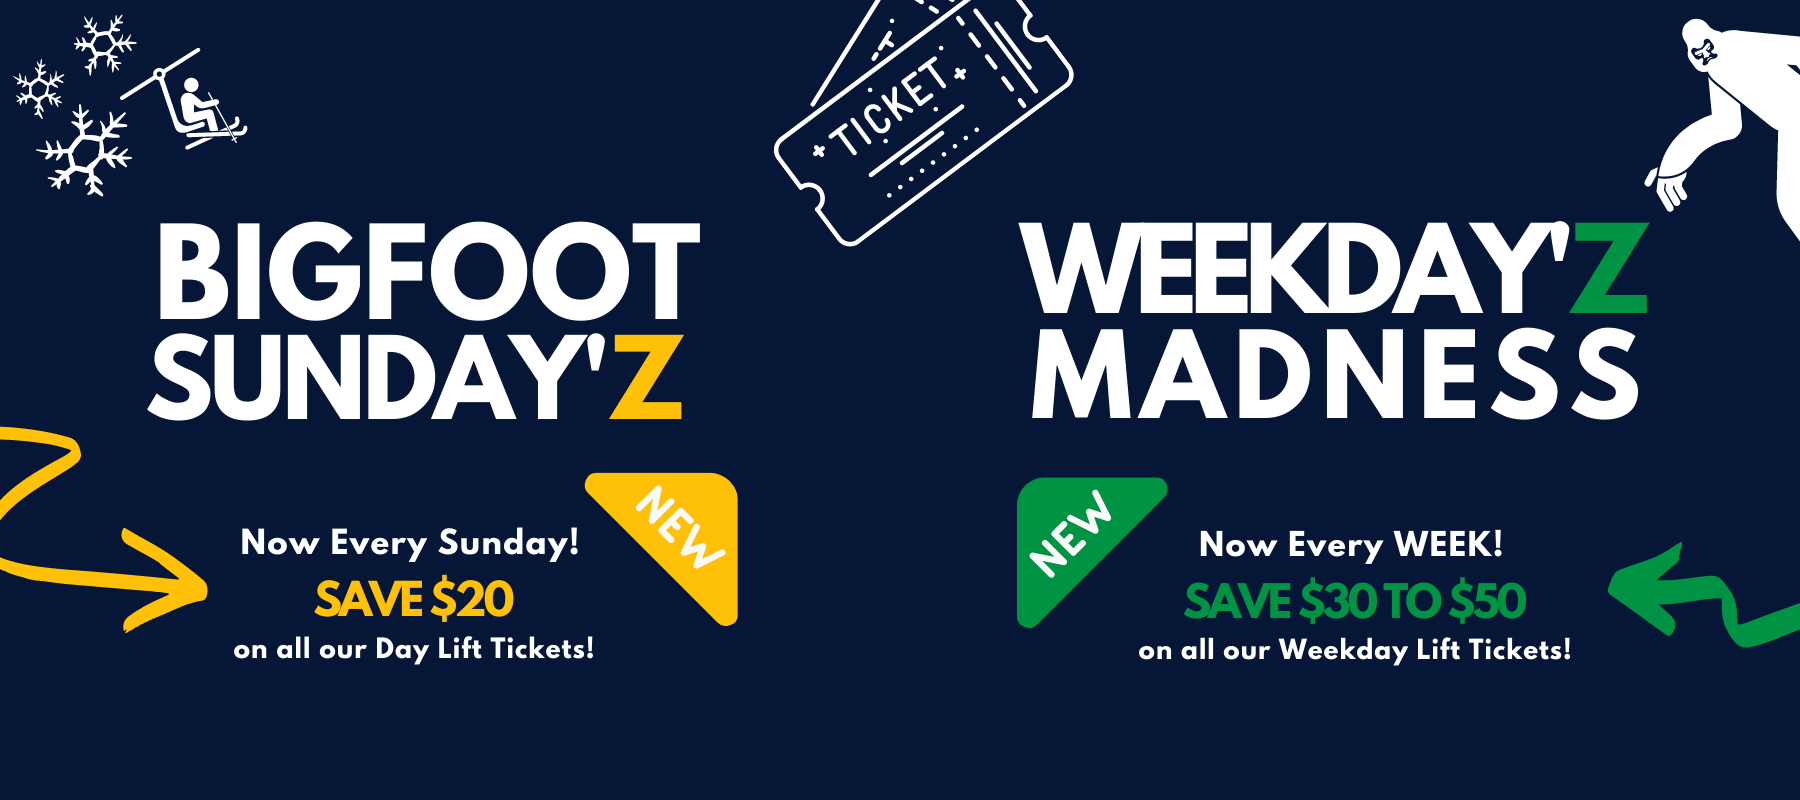 bigfoot sundayz and weekdayz madness offer